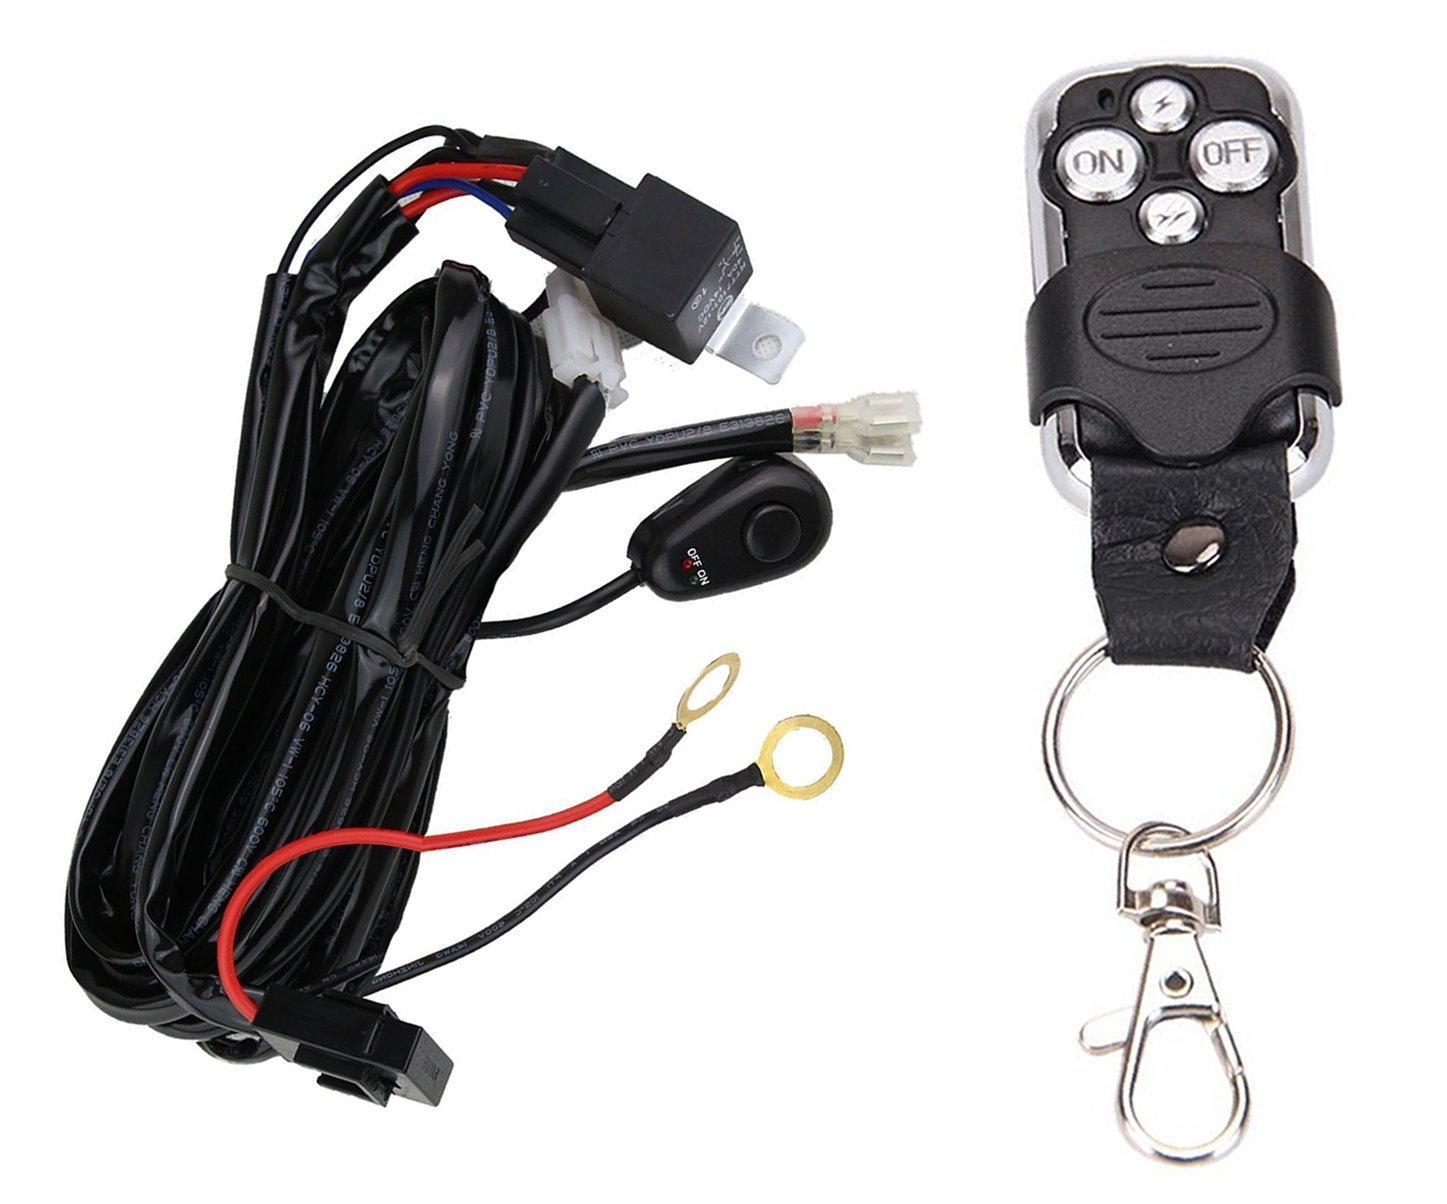 Wiring Harness for LED Light Bar with Remote Control by Glaretek | 12V 40A One Line Kit ON/OFF Switch Relay for Fog Light Off-Road Work 10FT Length (Remote Control), 12 Months Full Warranty